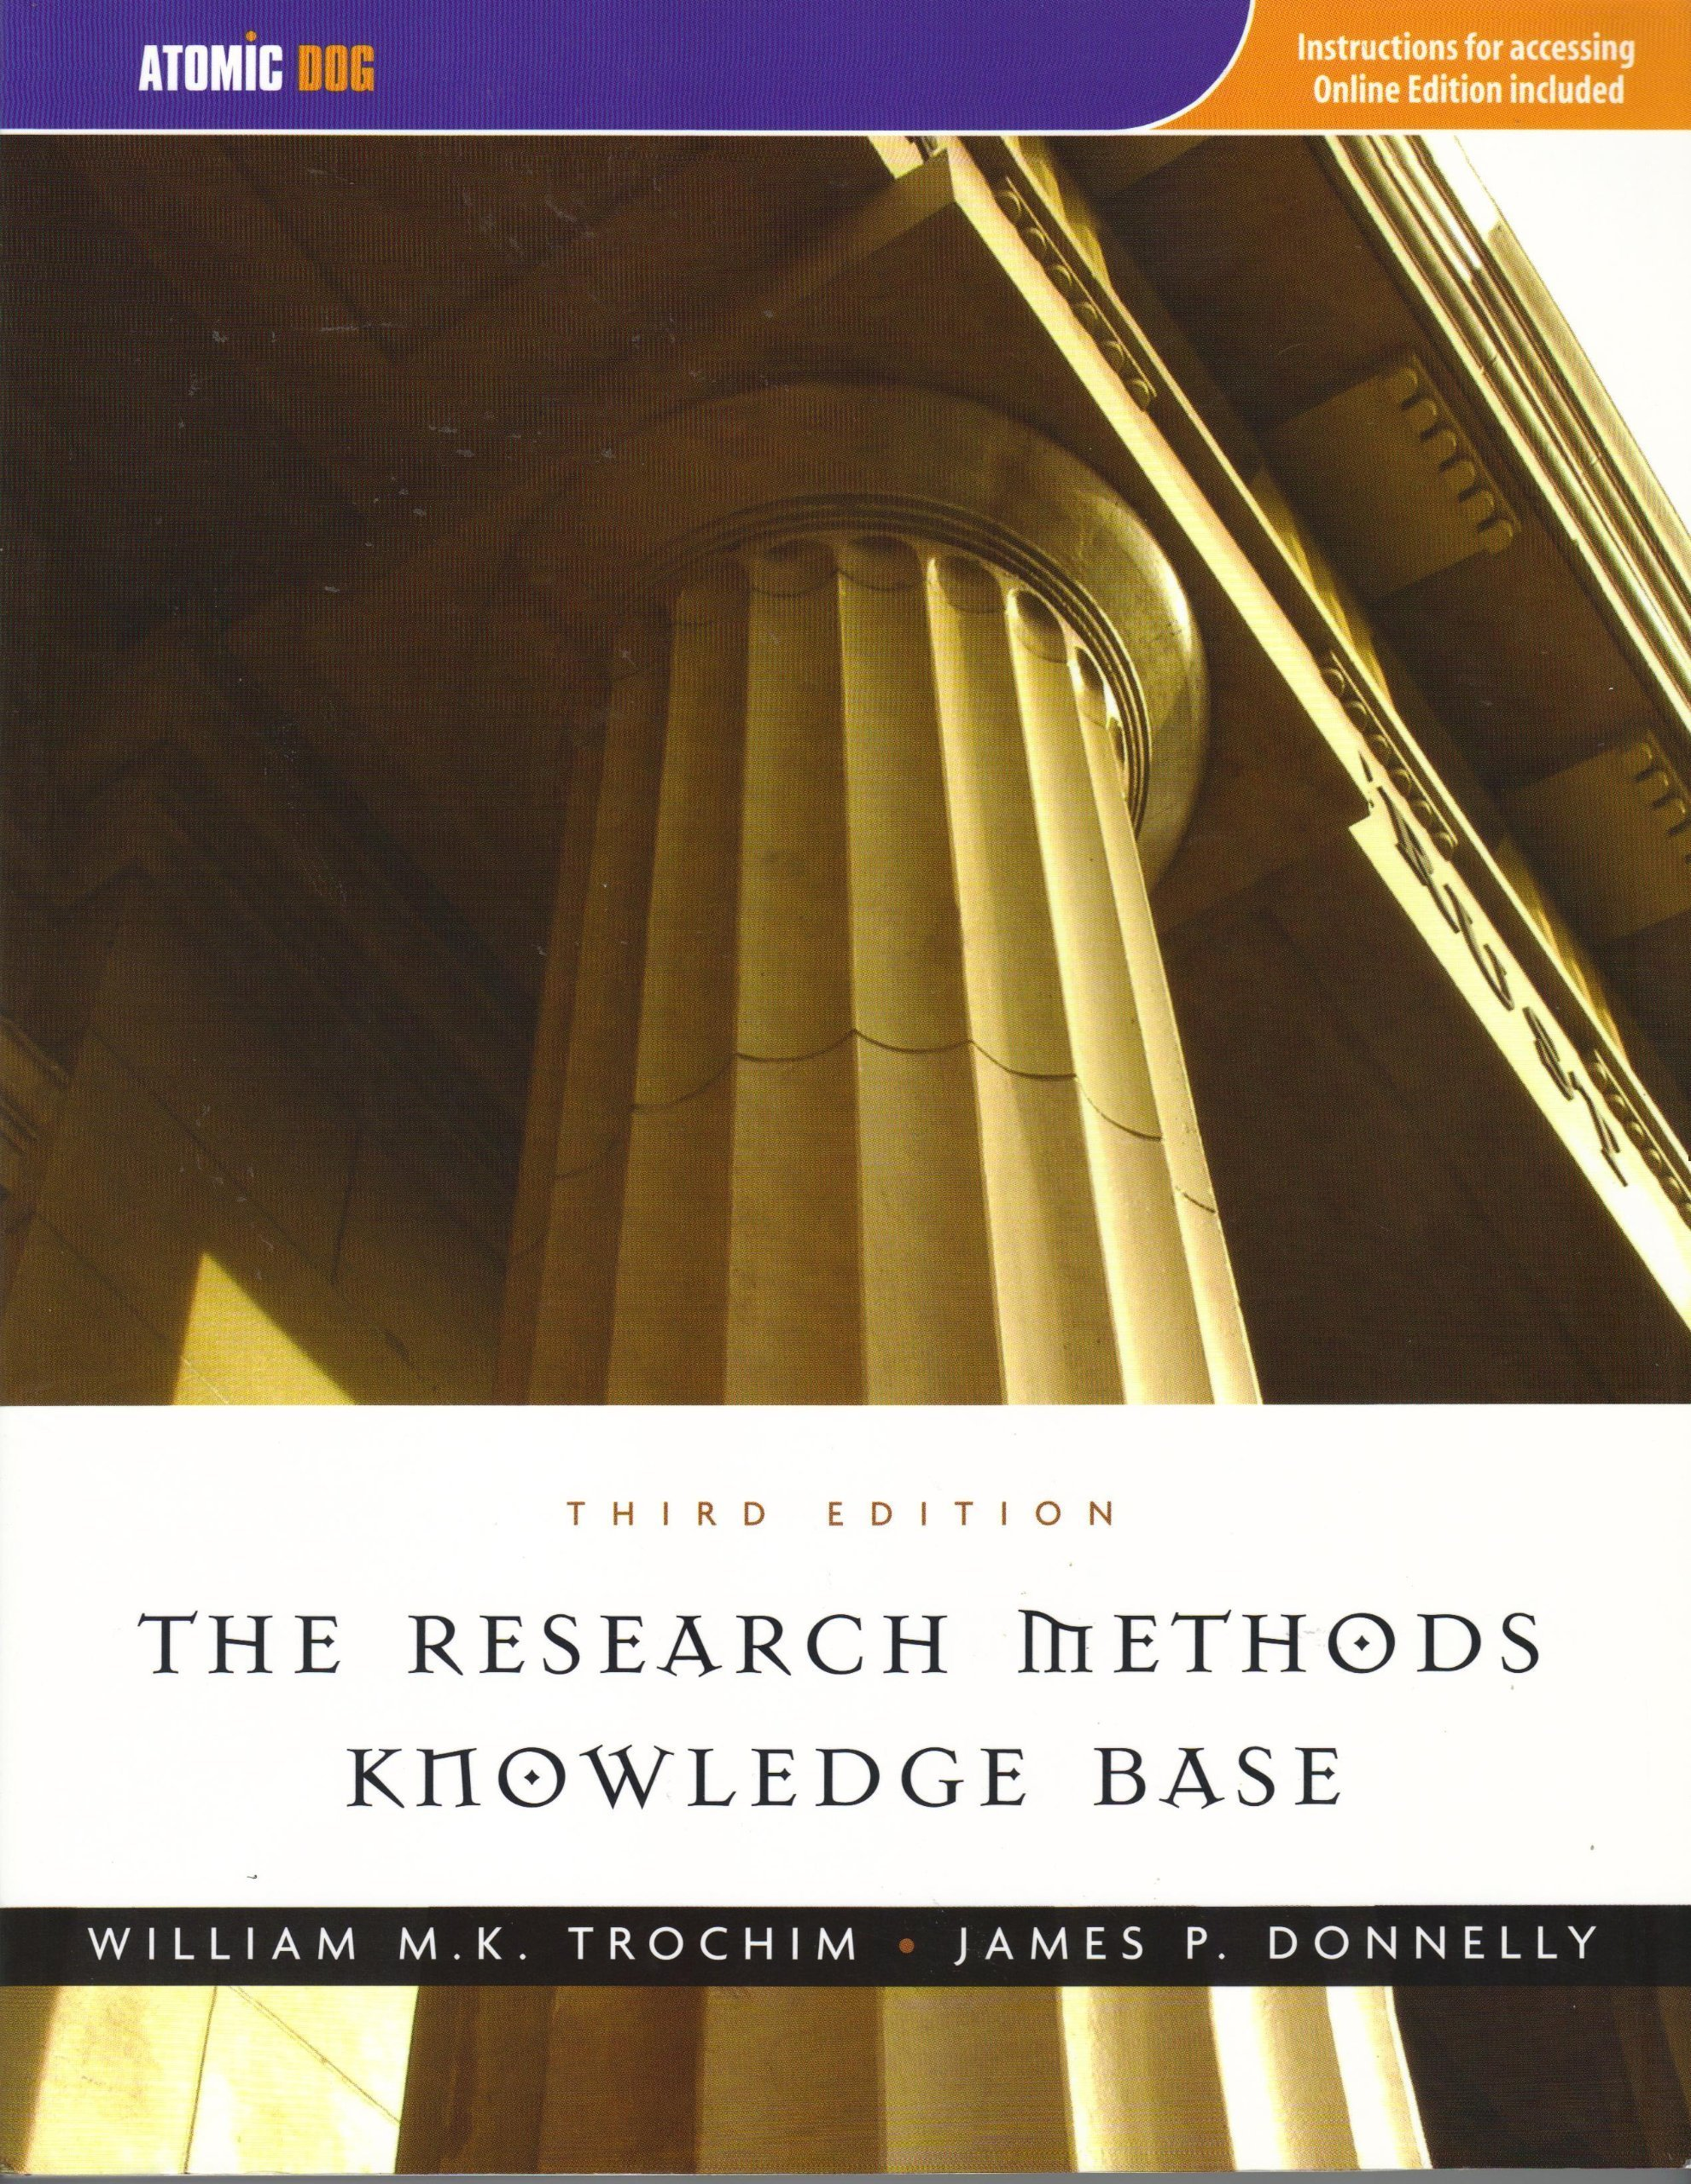 Download The Research Methods Knowledge Base, 3rd edition, [Student Edition] pdf